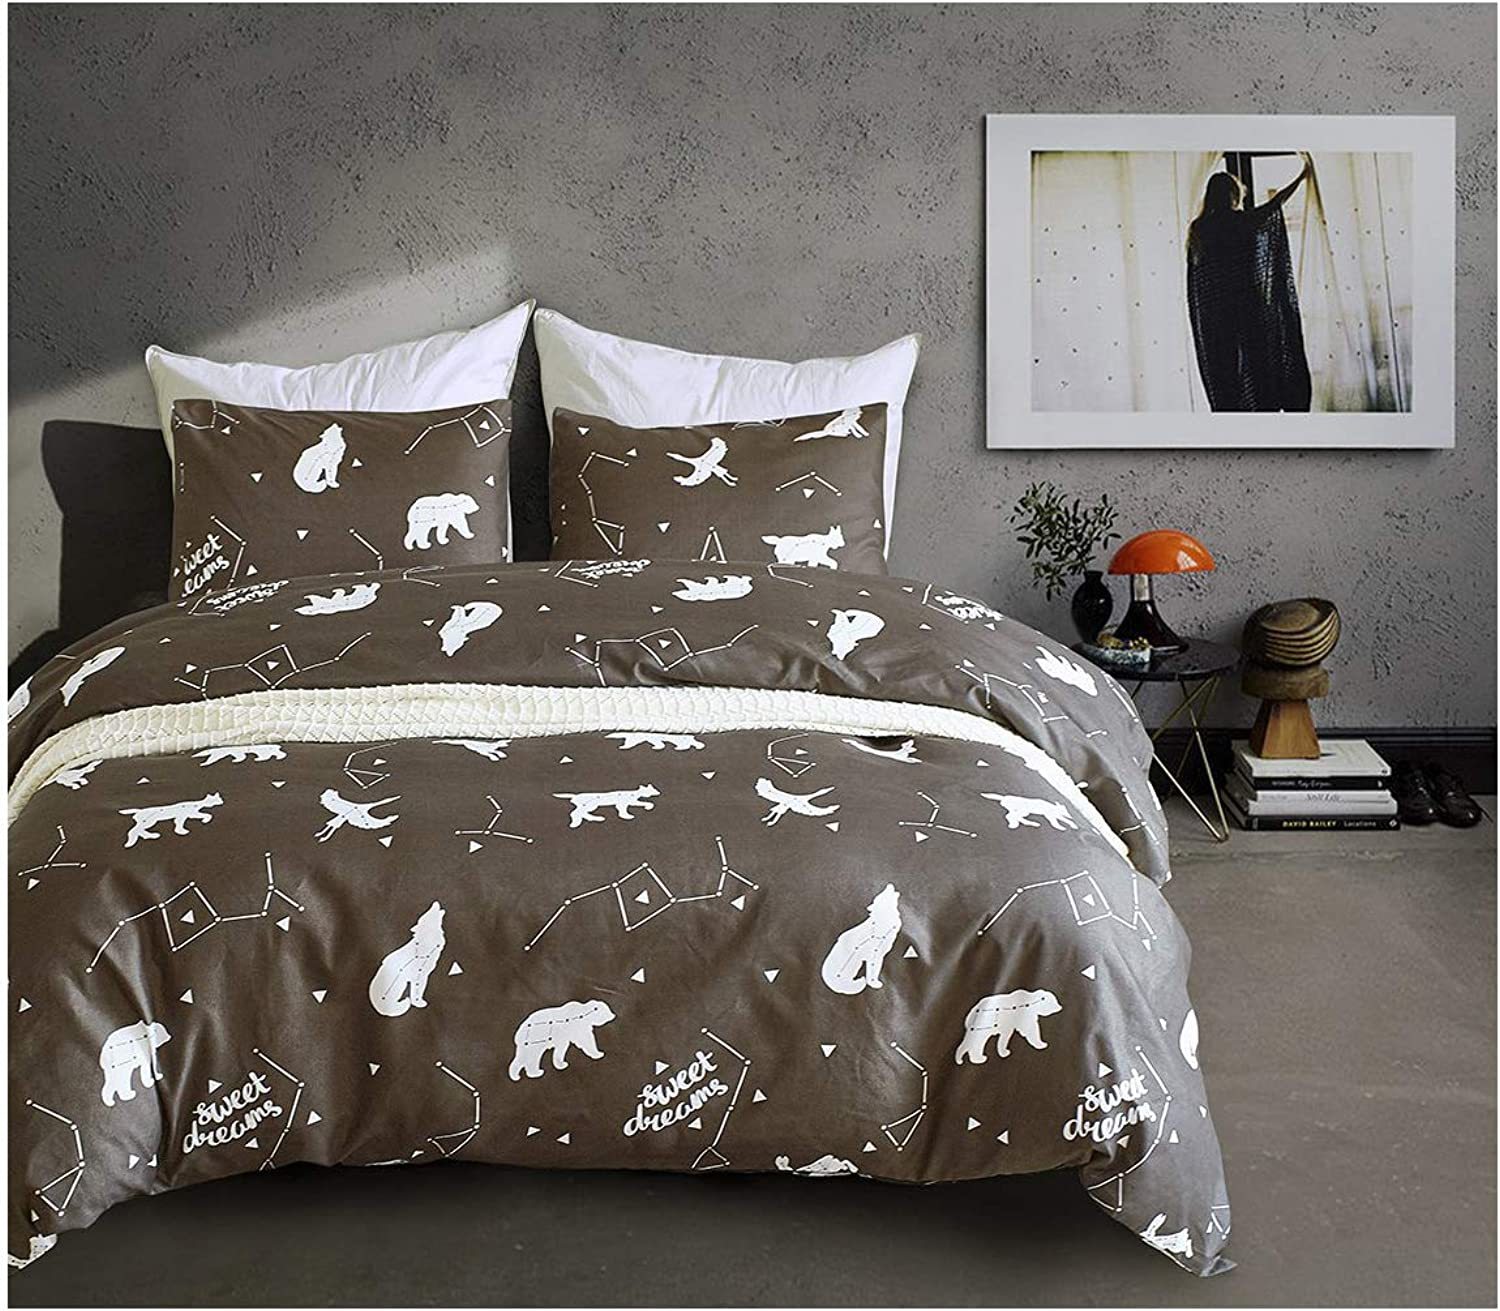 Luofanfei Constellation Duvet Cover Sets Kids Boys Twin Cotton Comforter Cover 3PC Black Animals Bedding Cover Sets with 4 Corner Ties,Zipper Closure